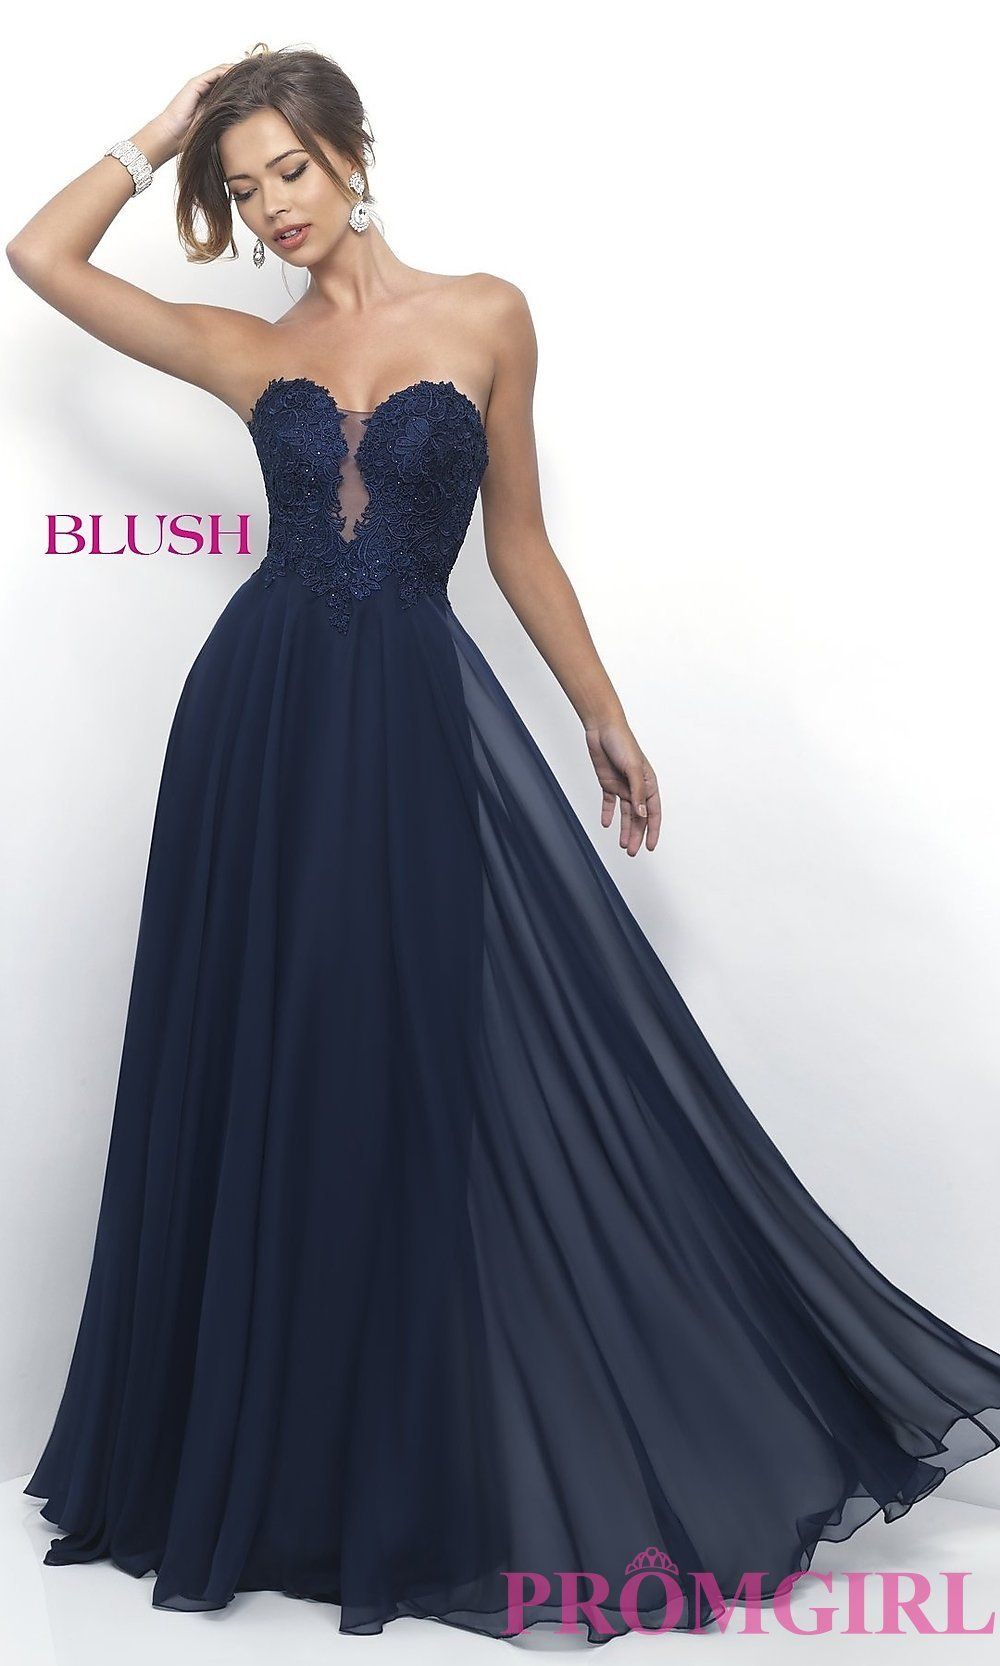 4ef60923d10 Long Strapless Prom Dress With Sweetheart Neckline And Lace Bodice ...